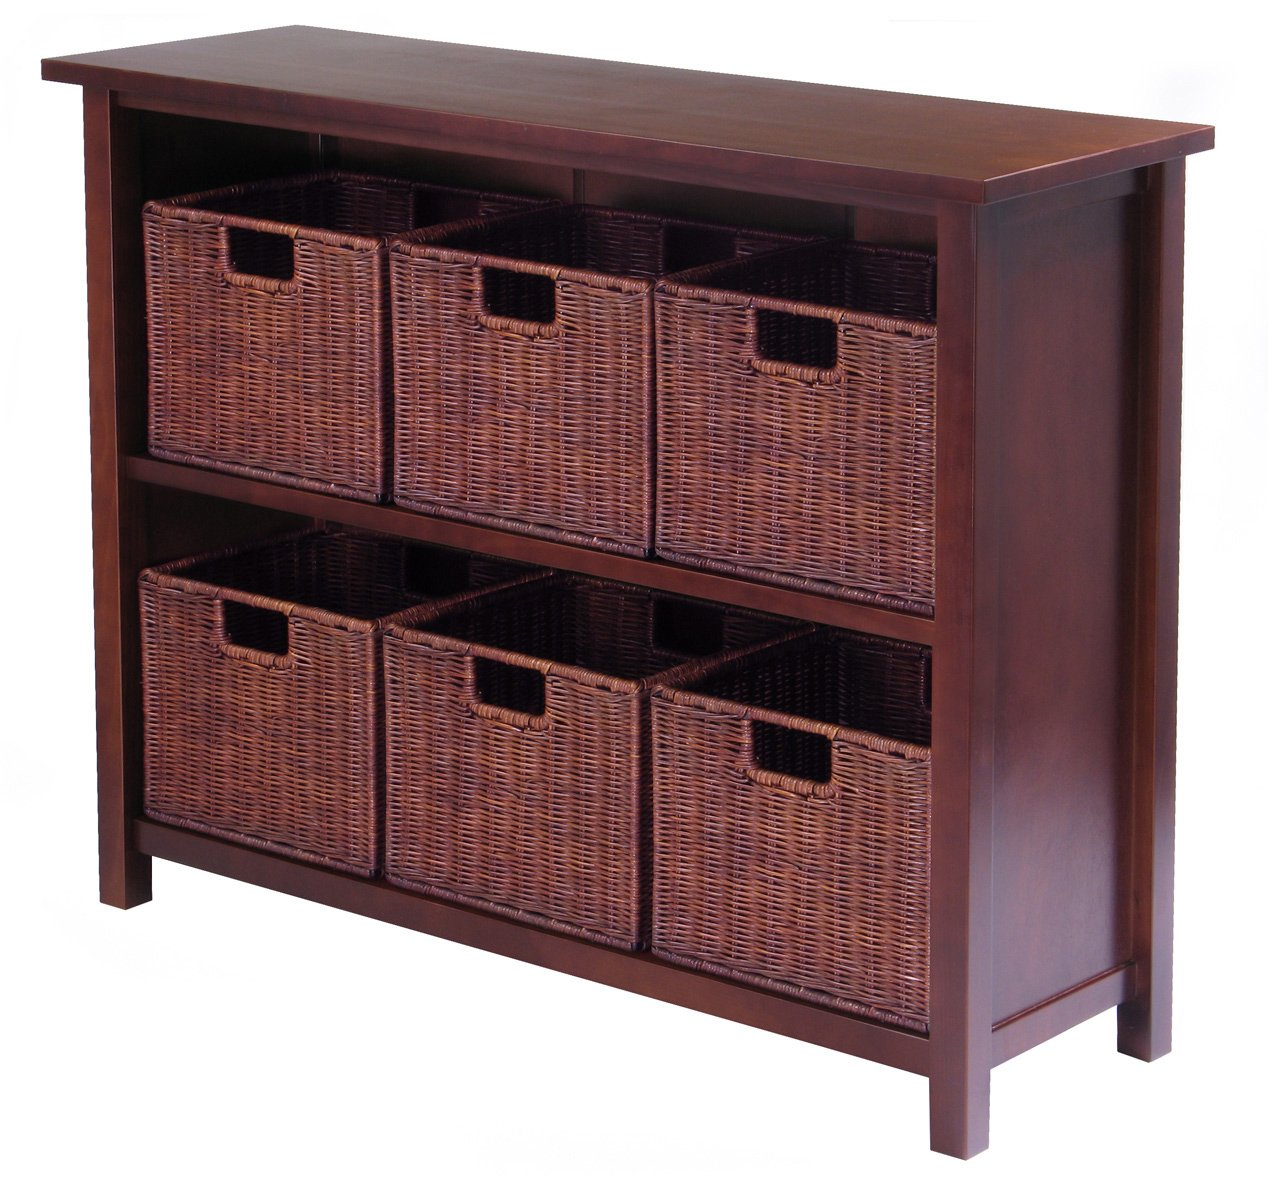 Winsome Wood Milan Wood 3 Tier Open Cabinet and 6 Rattan Baskets in Walnut Finish by Winsome Wood